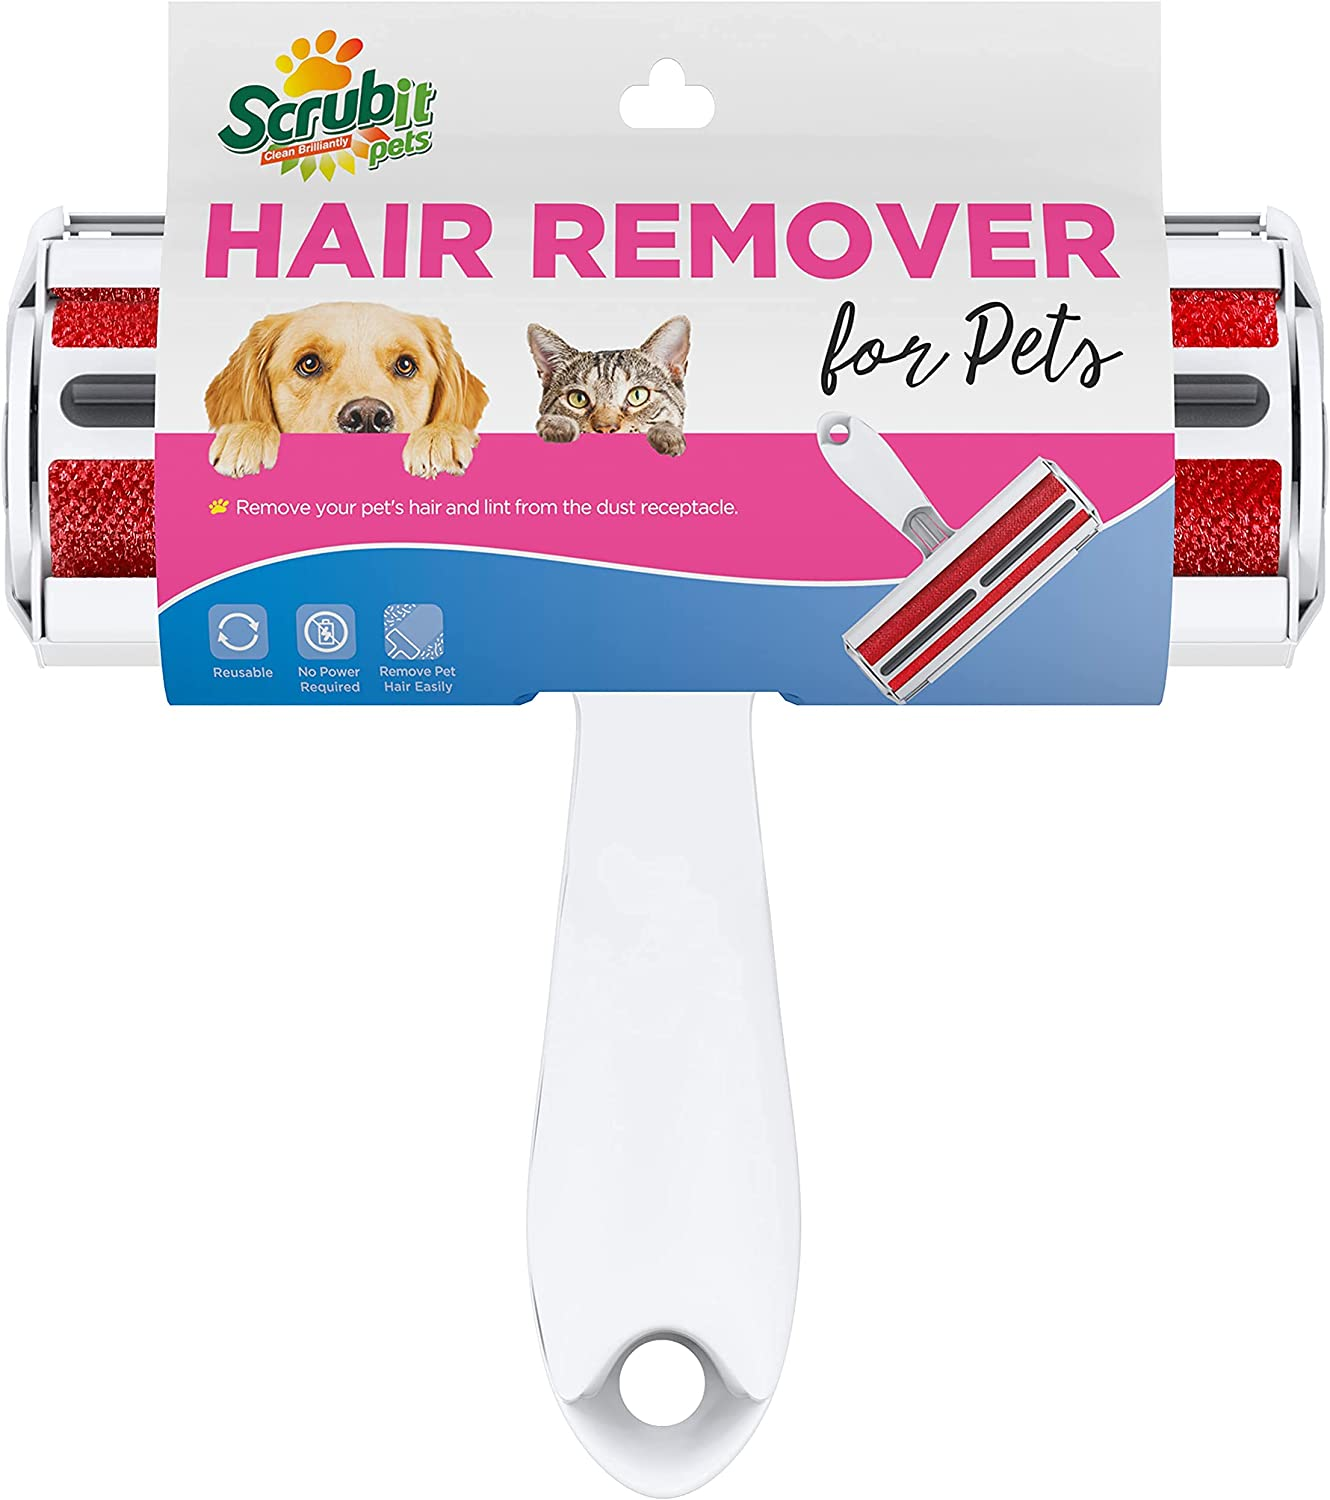 SCRUBIT Pet Hair Remover - Dog & Cat Roller Brush with Built-in Waste Bin - Reusable Animal Lint Removal Tool - Cleans Couch, Beds, Sofas, Cars, and Furniture from Pet Fur and Lint : Pet Supplies